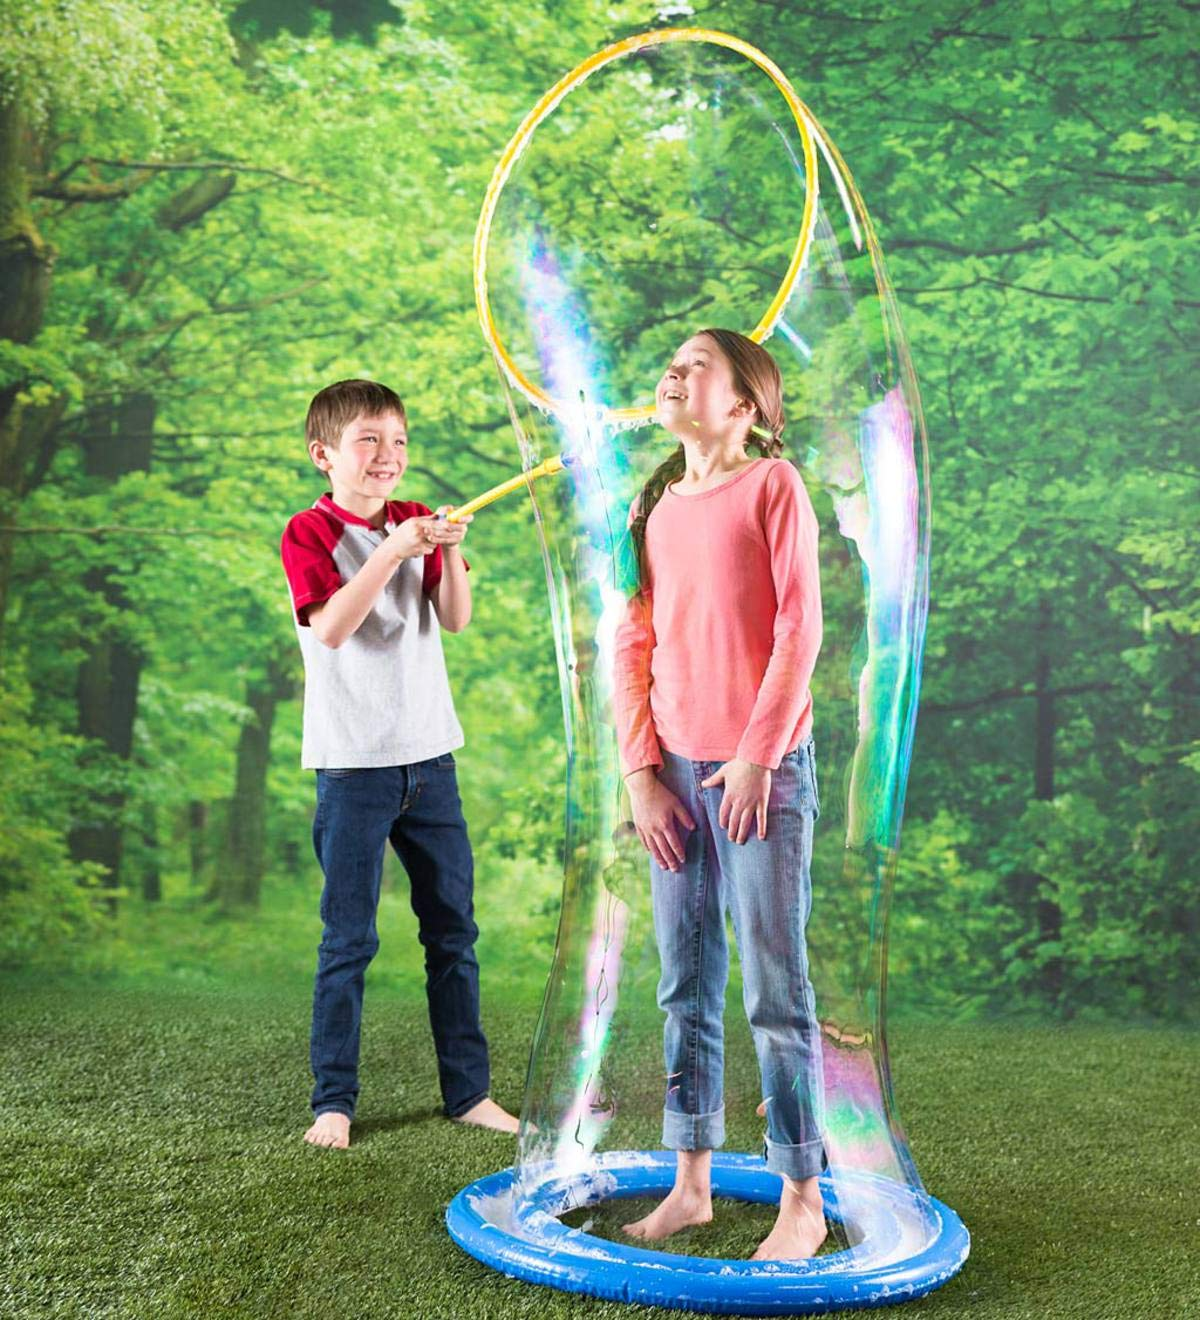 HearthSong® Giant Mega Bubble Wand Kit with Bubble Tray - Outdoor Play for Kids - Includes Bubble Concentrate Solution by HearthSong®